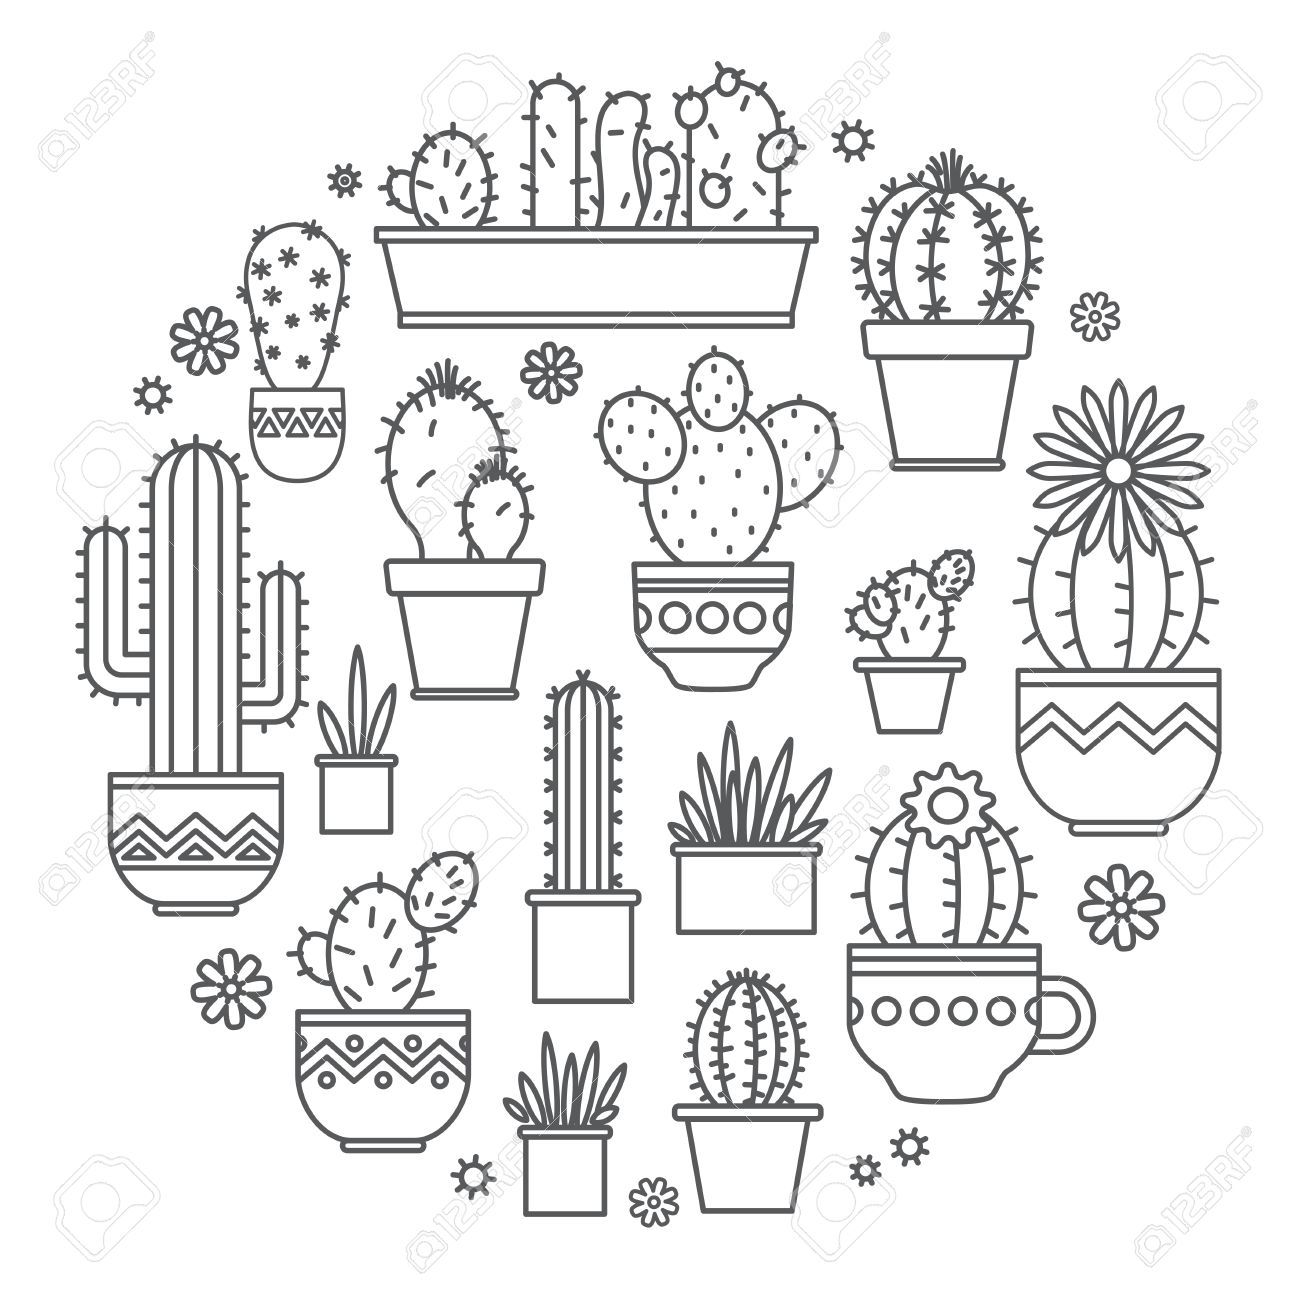 cactus drawing - Google Search | embroidery | Pinterest | Bordado ...